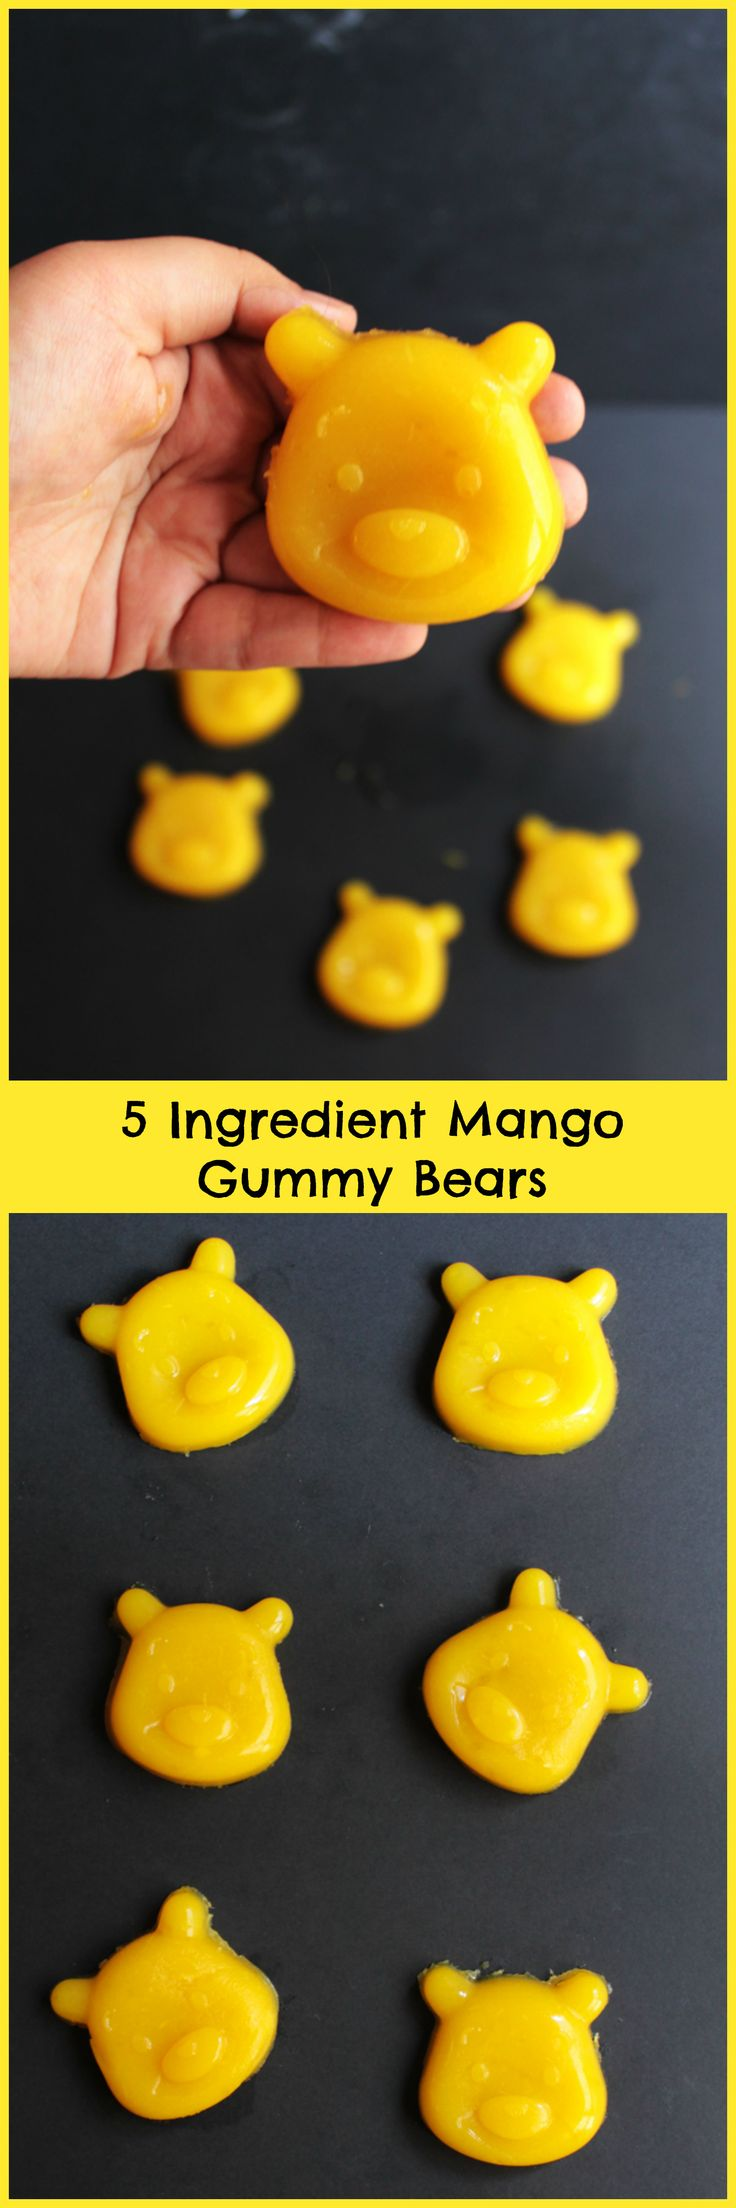 Delicious mango gummy bears made from just 5 ingredients. Made from fresh mango puree and orange juice. Just one tablespoon of added sugar. Ready in an hour.: